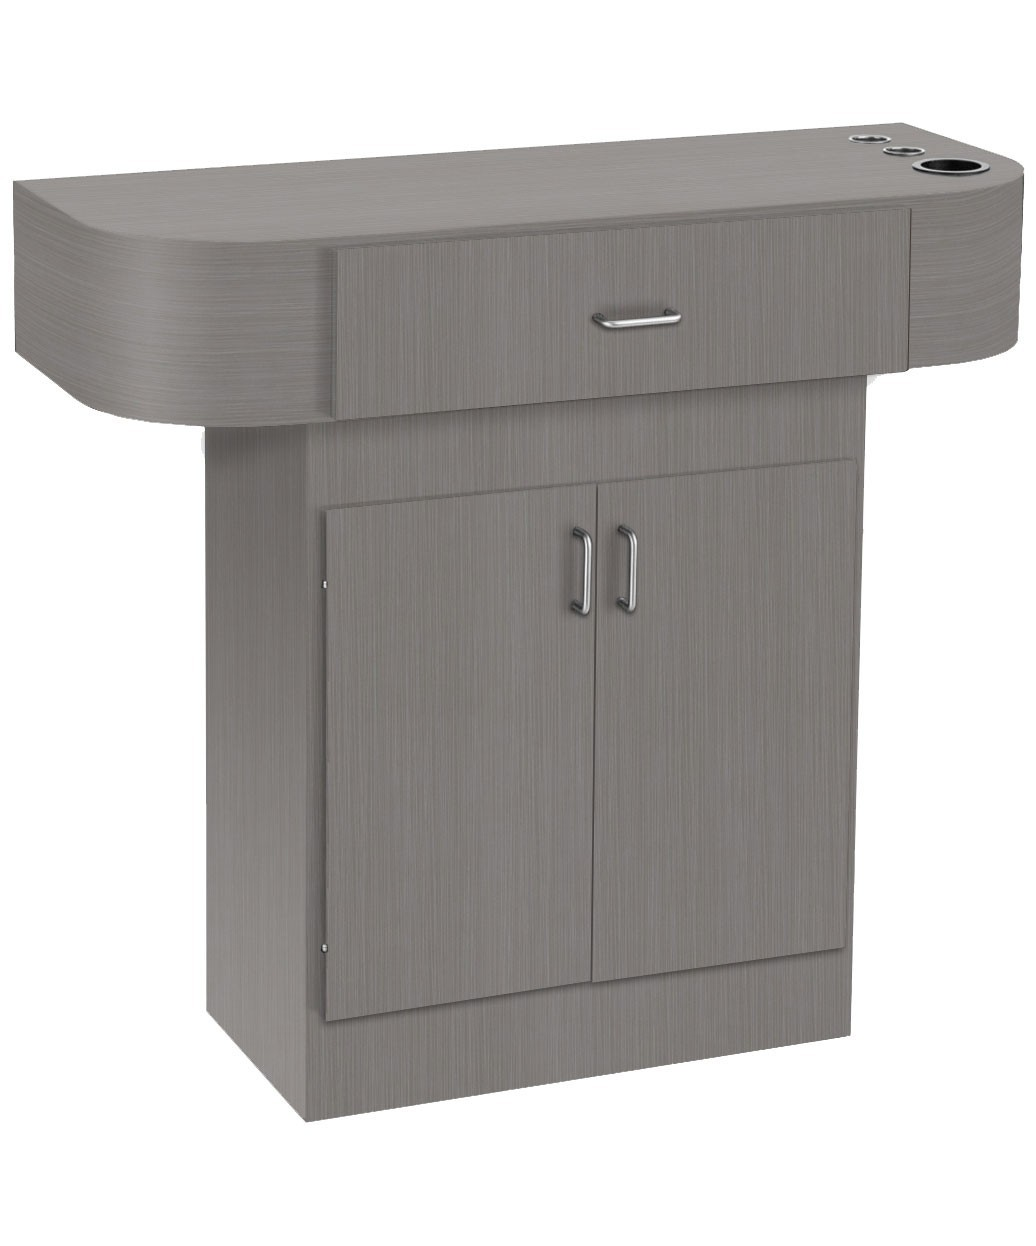 3 Operator Pibbs 5406 Loop Package Jazz Styling Station With Storage